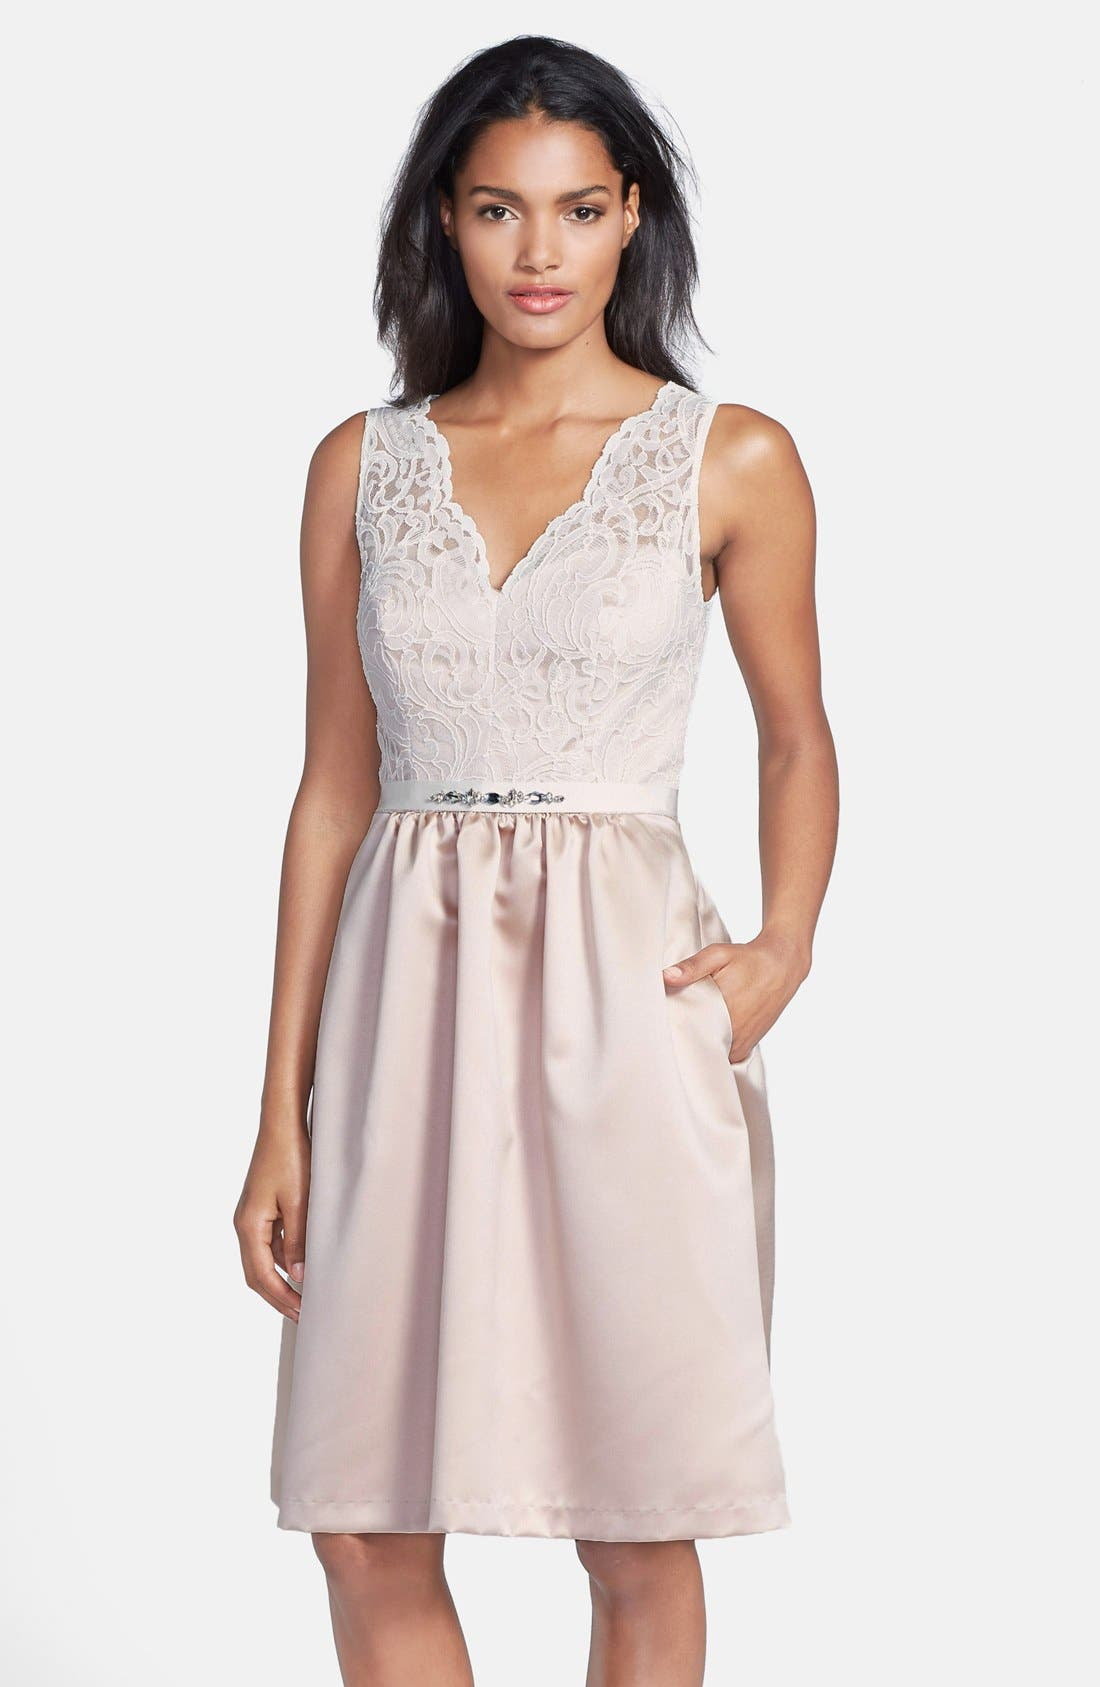 Embellished Lace with Satin Fit & Flare Dress,                         Main,                         color, 101